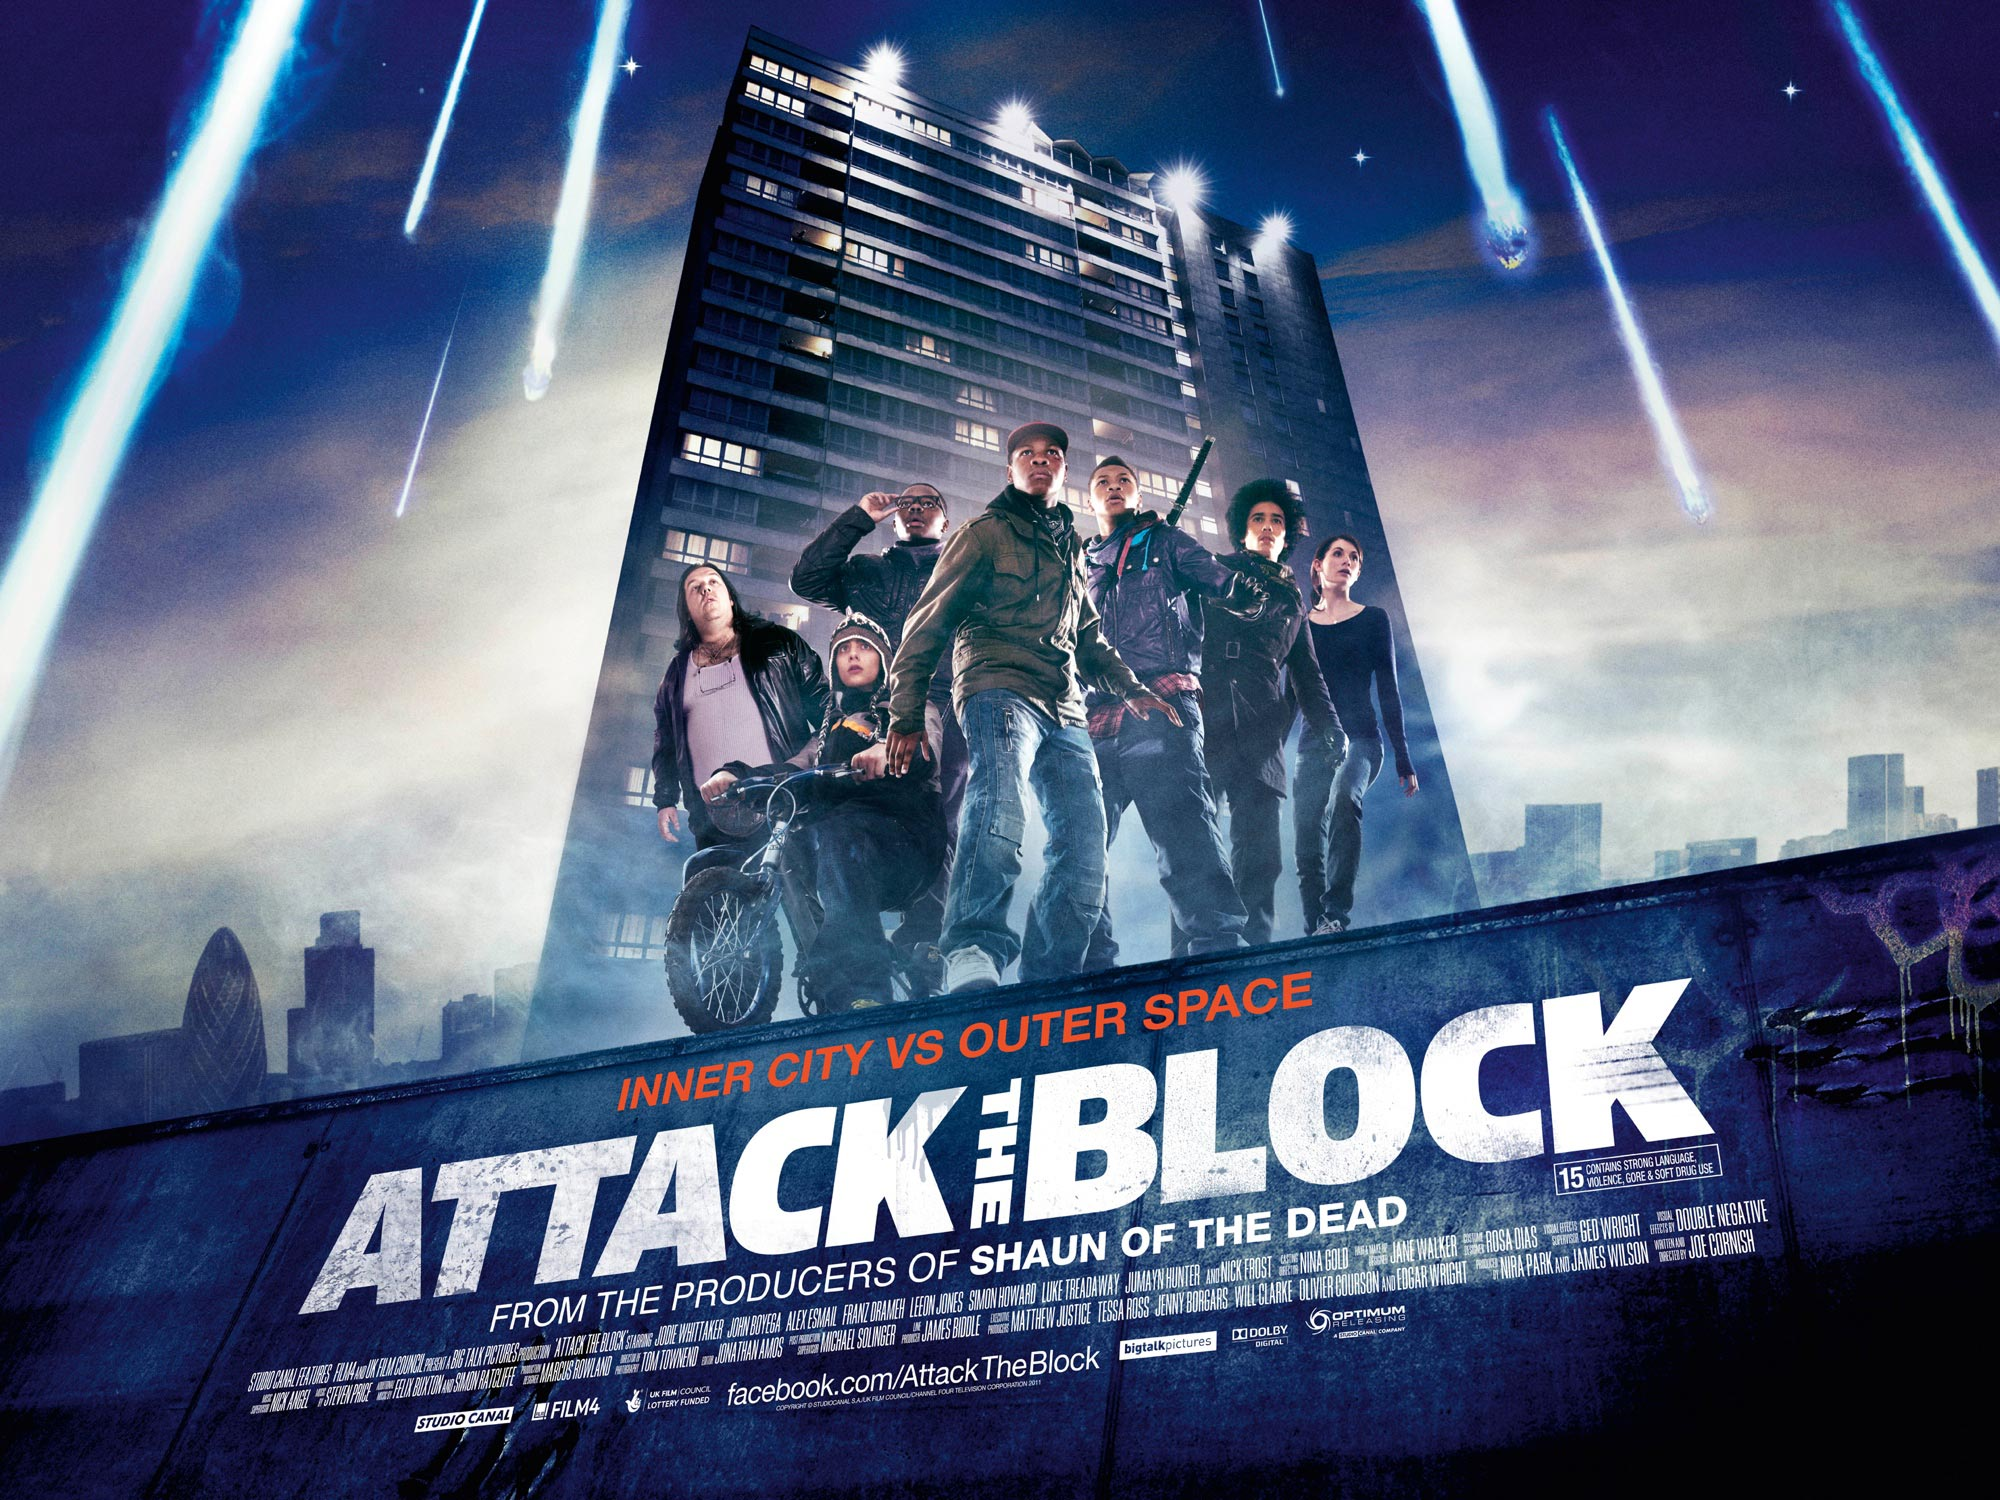 http://www.filmofilia.com/wp-content/uploads/2011/06/attack-the-block_poster.jpg